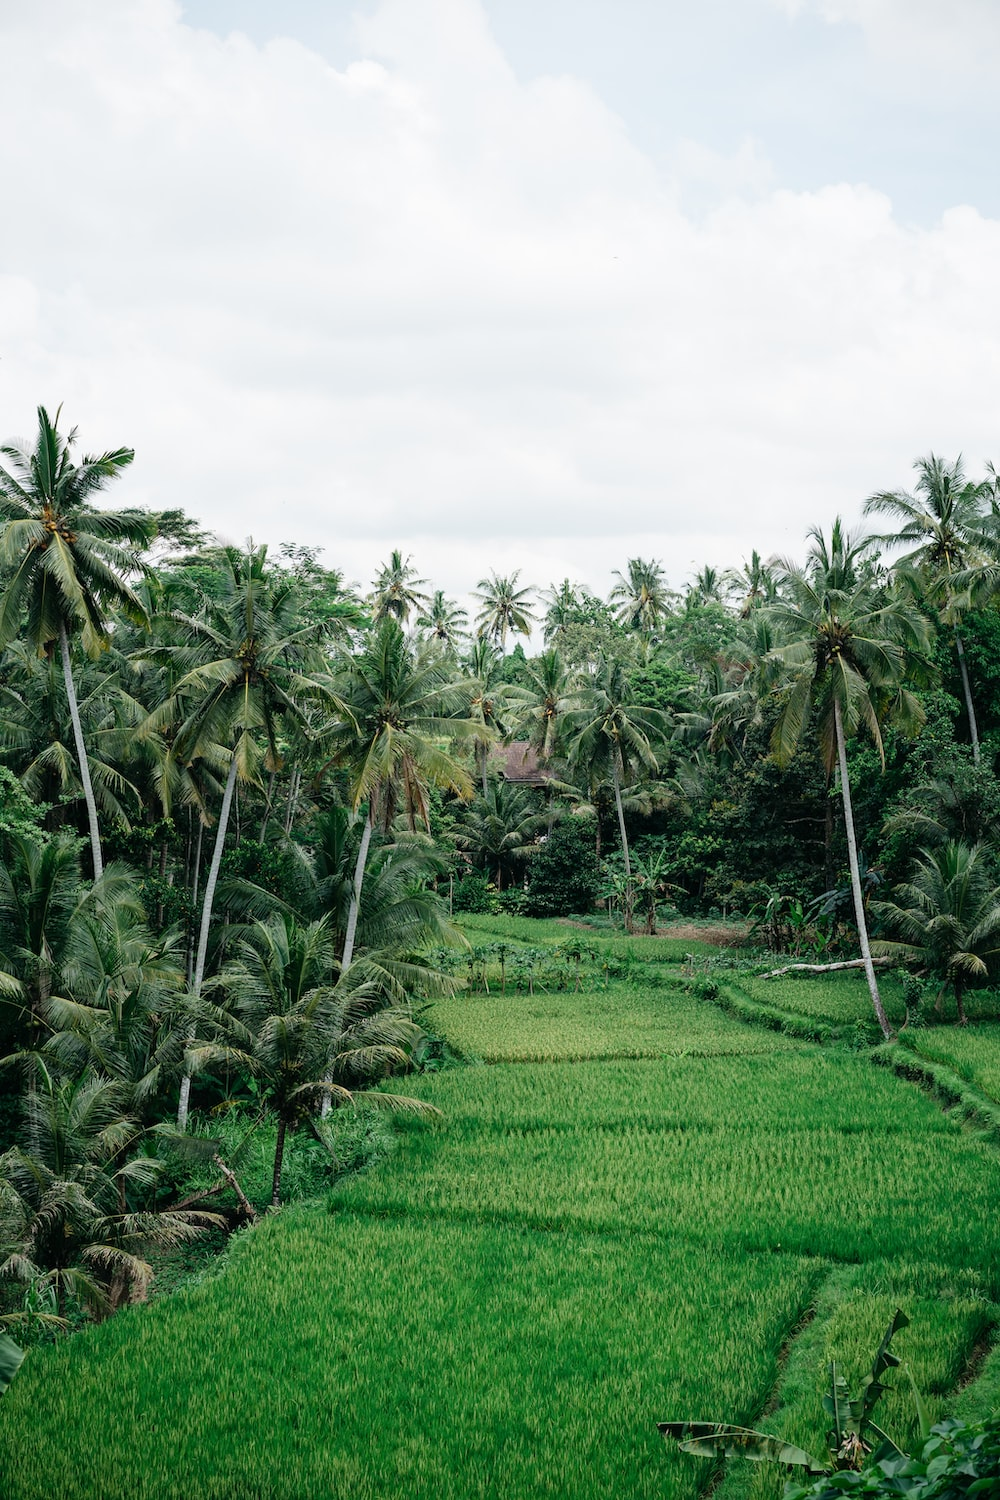 tropical trees between rice field